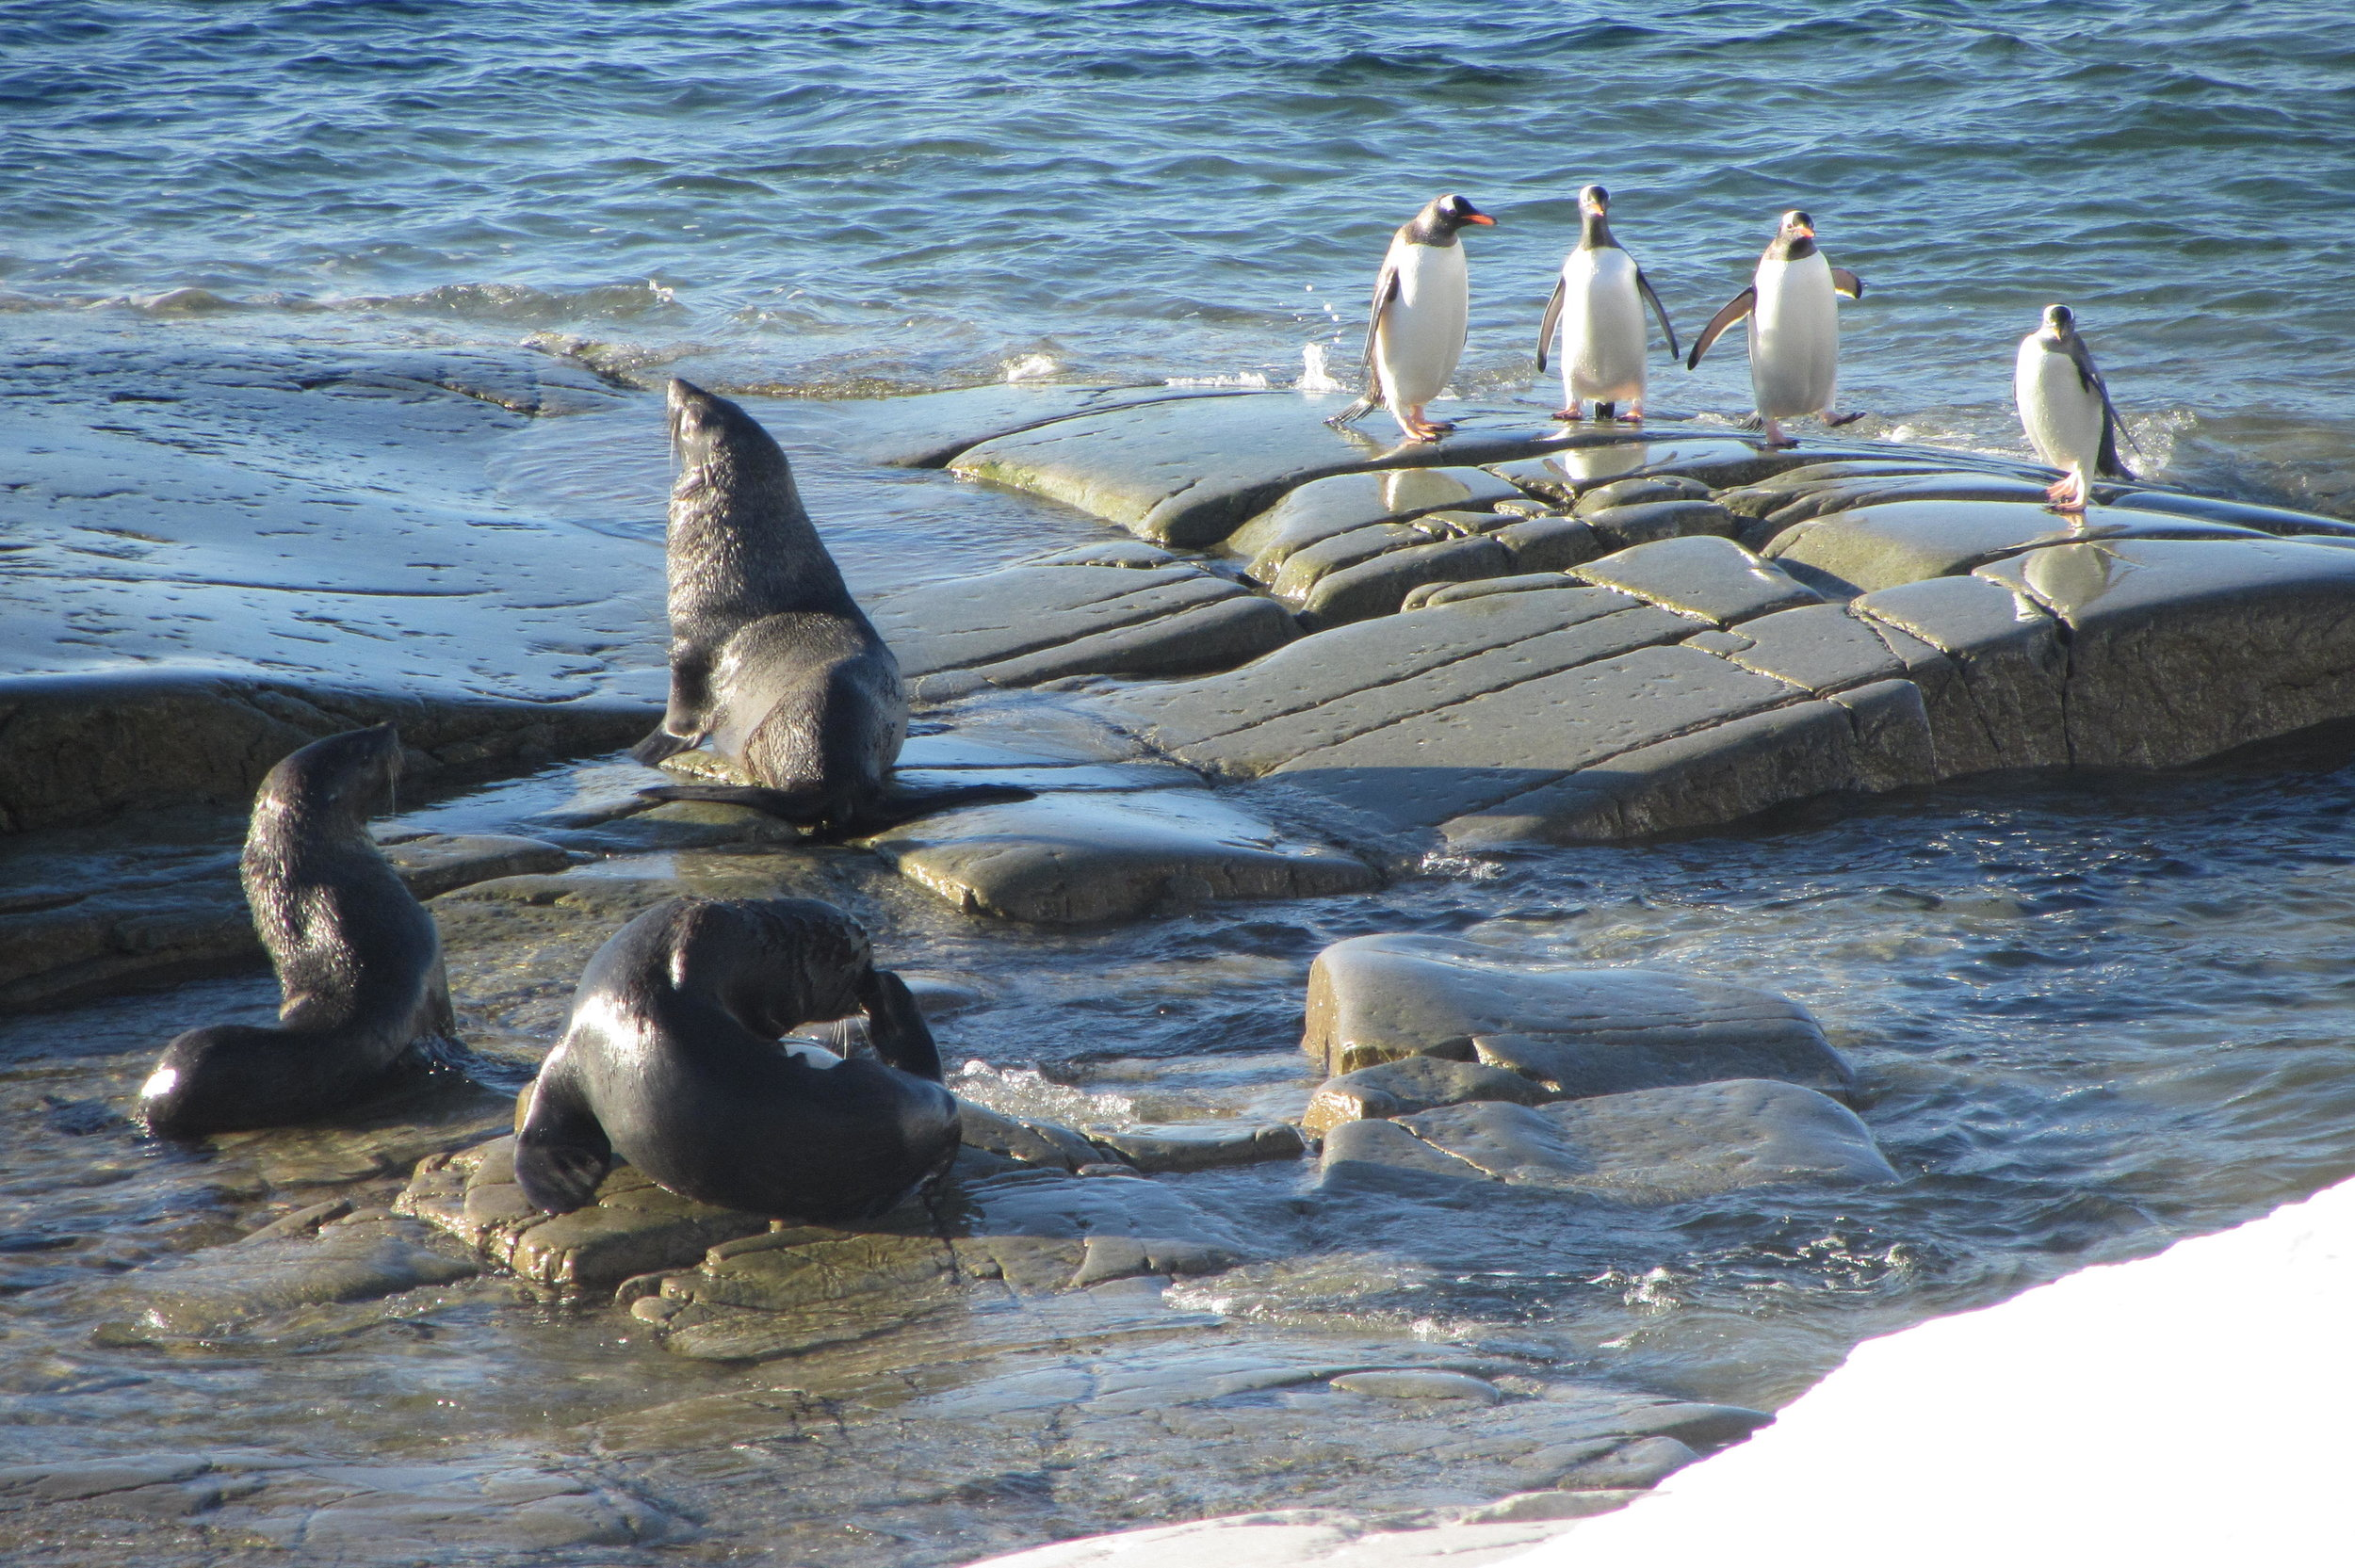 Fur seals and Gentoo penguins basking in the sun. (Picture Credits: Ashish Saxena)